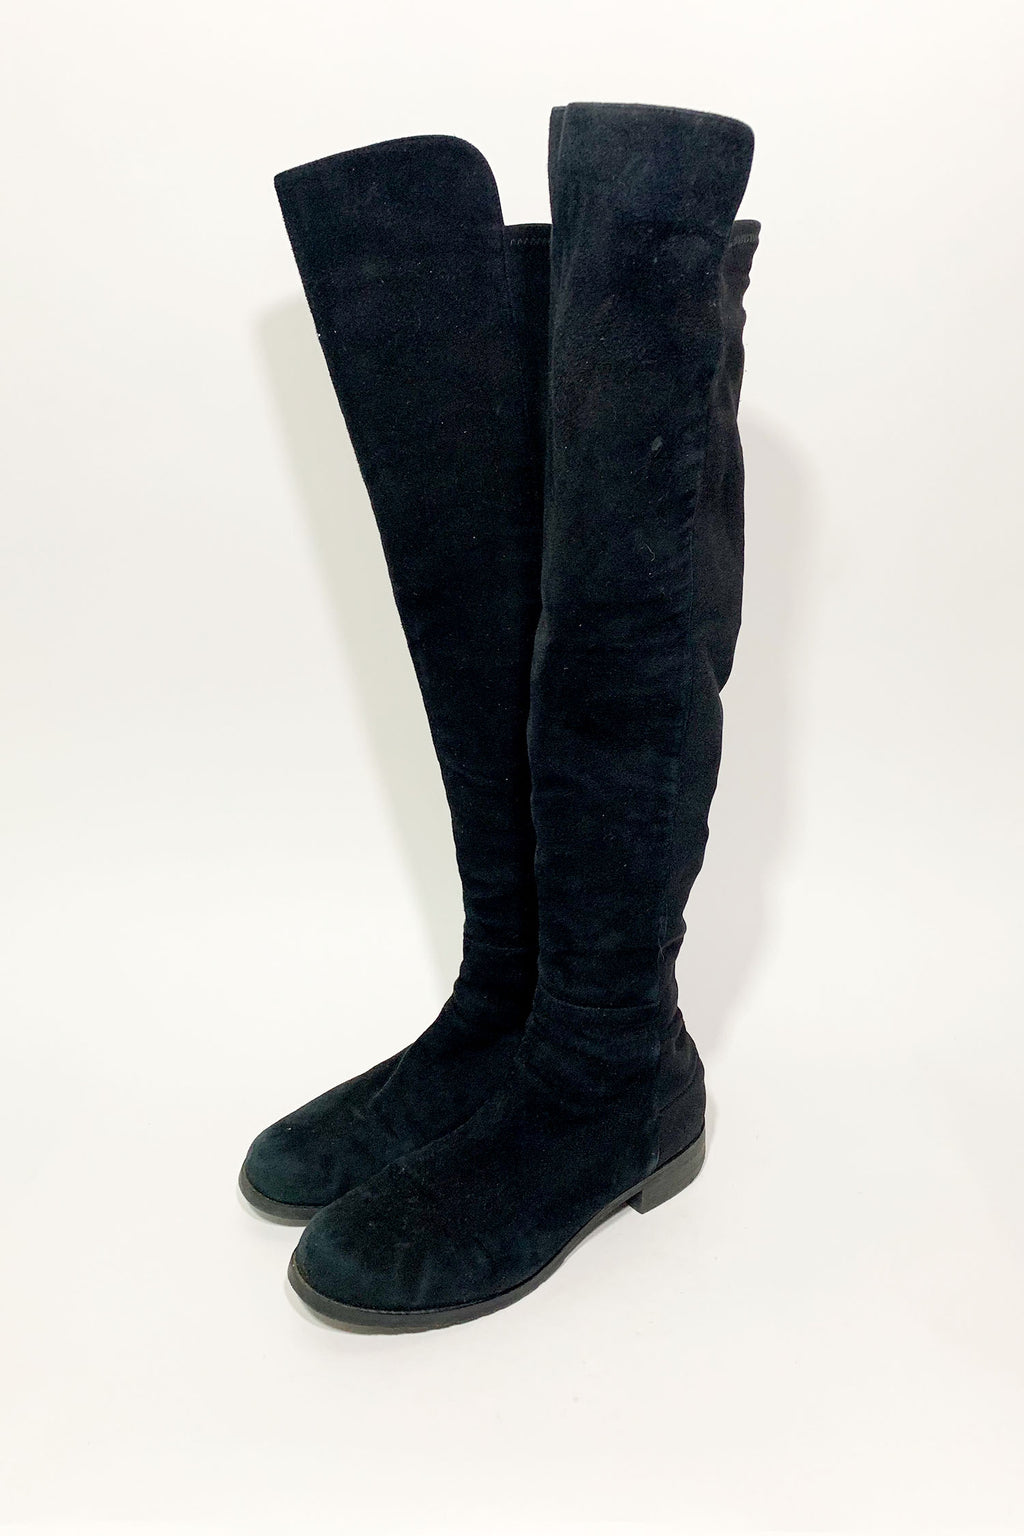 Stuart Weitzman Black 50/50 Knee-High Boots Sz 38